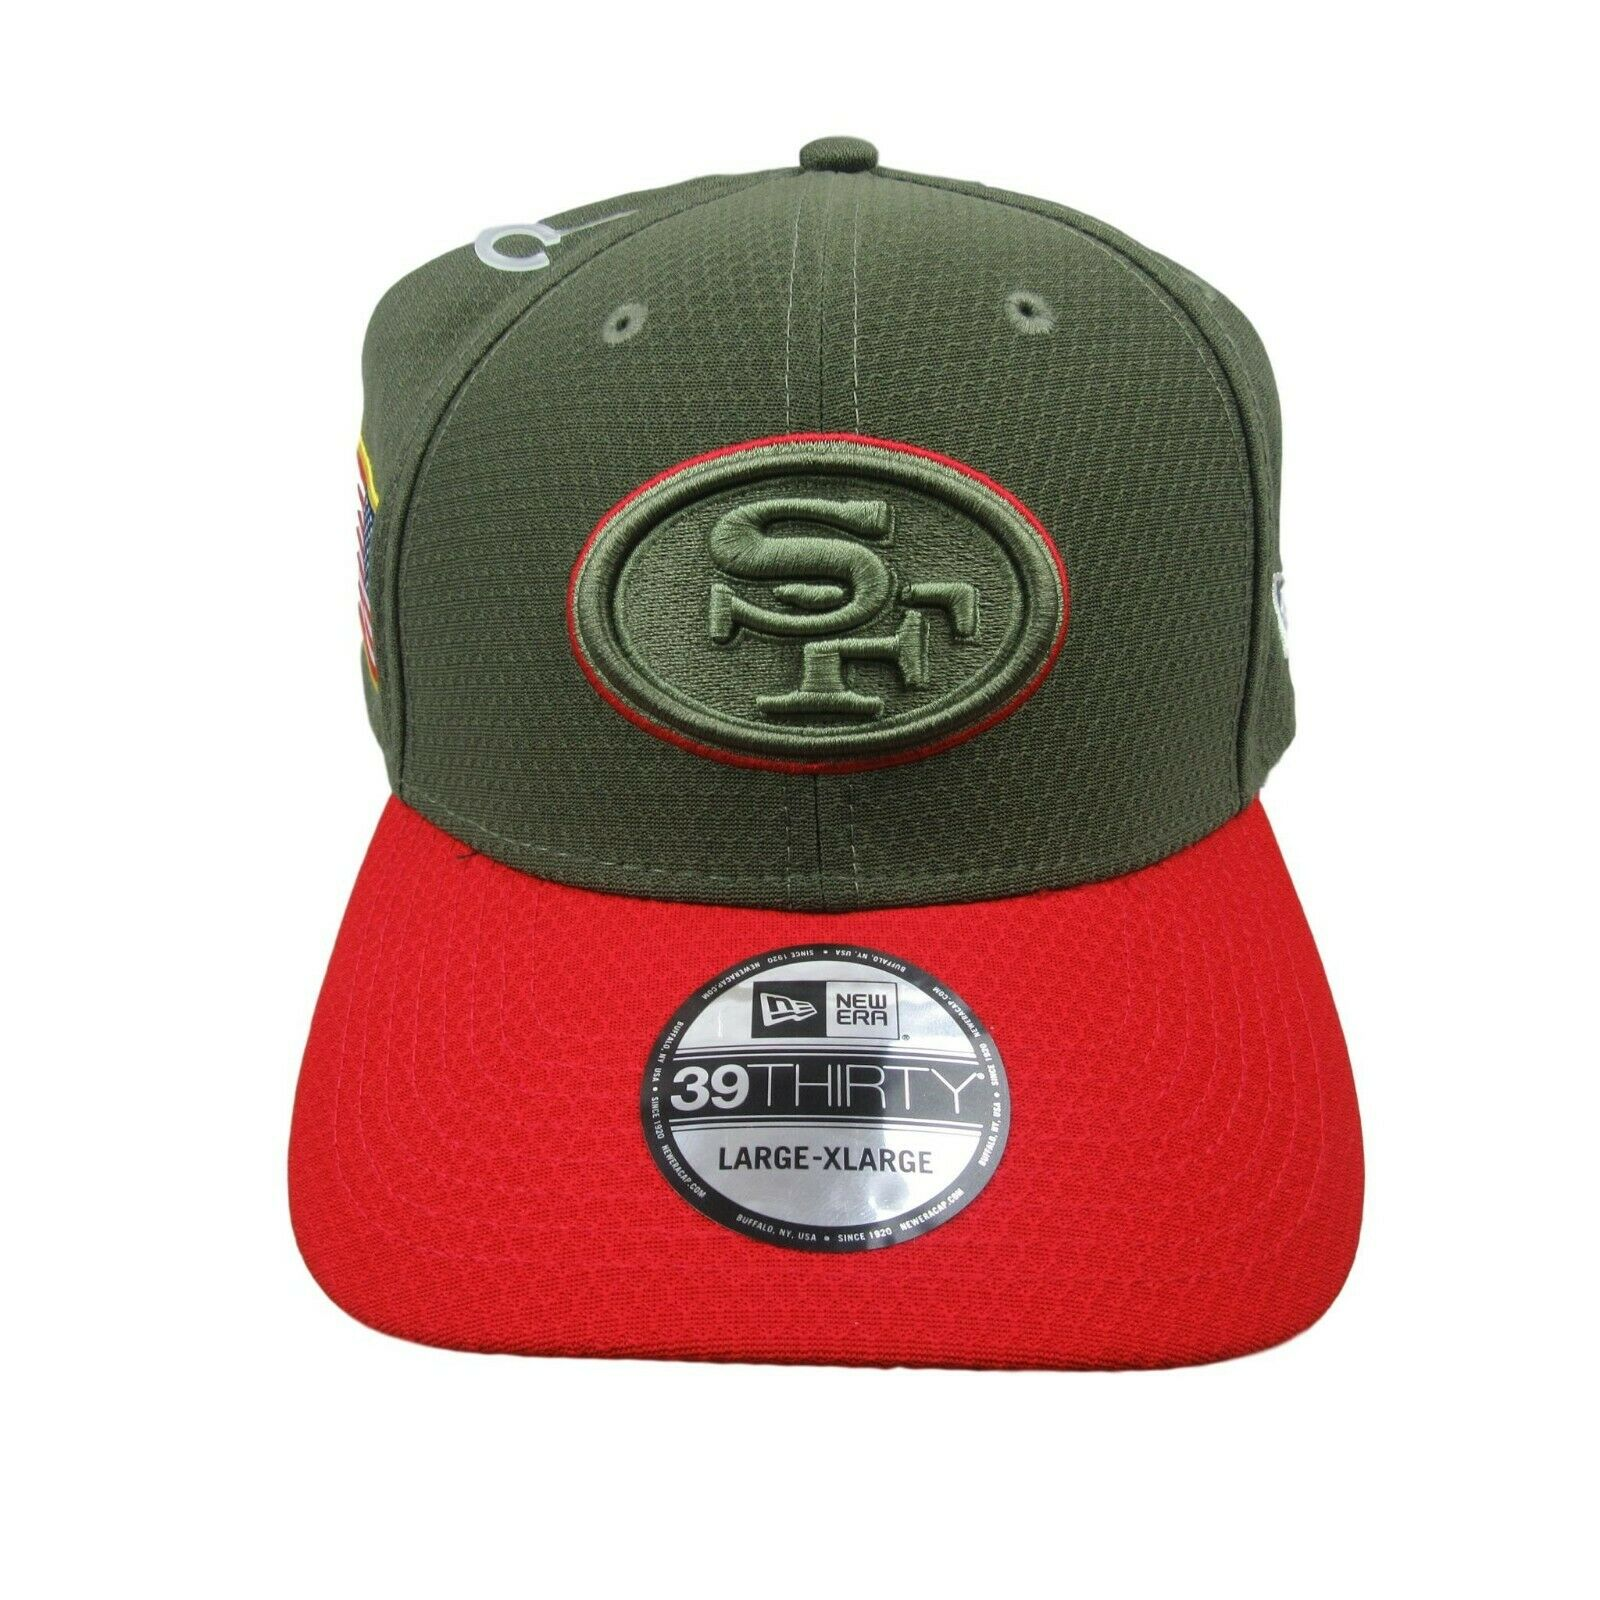 50bb3bf62 San Francisco 49ers New Era Salute to Service Size Large XL Fitted ...